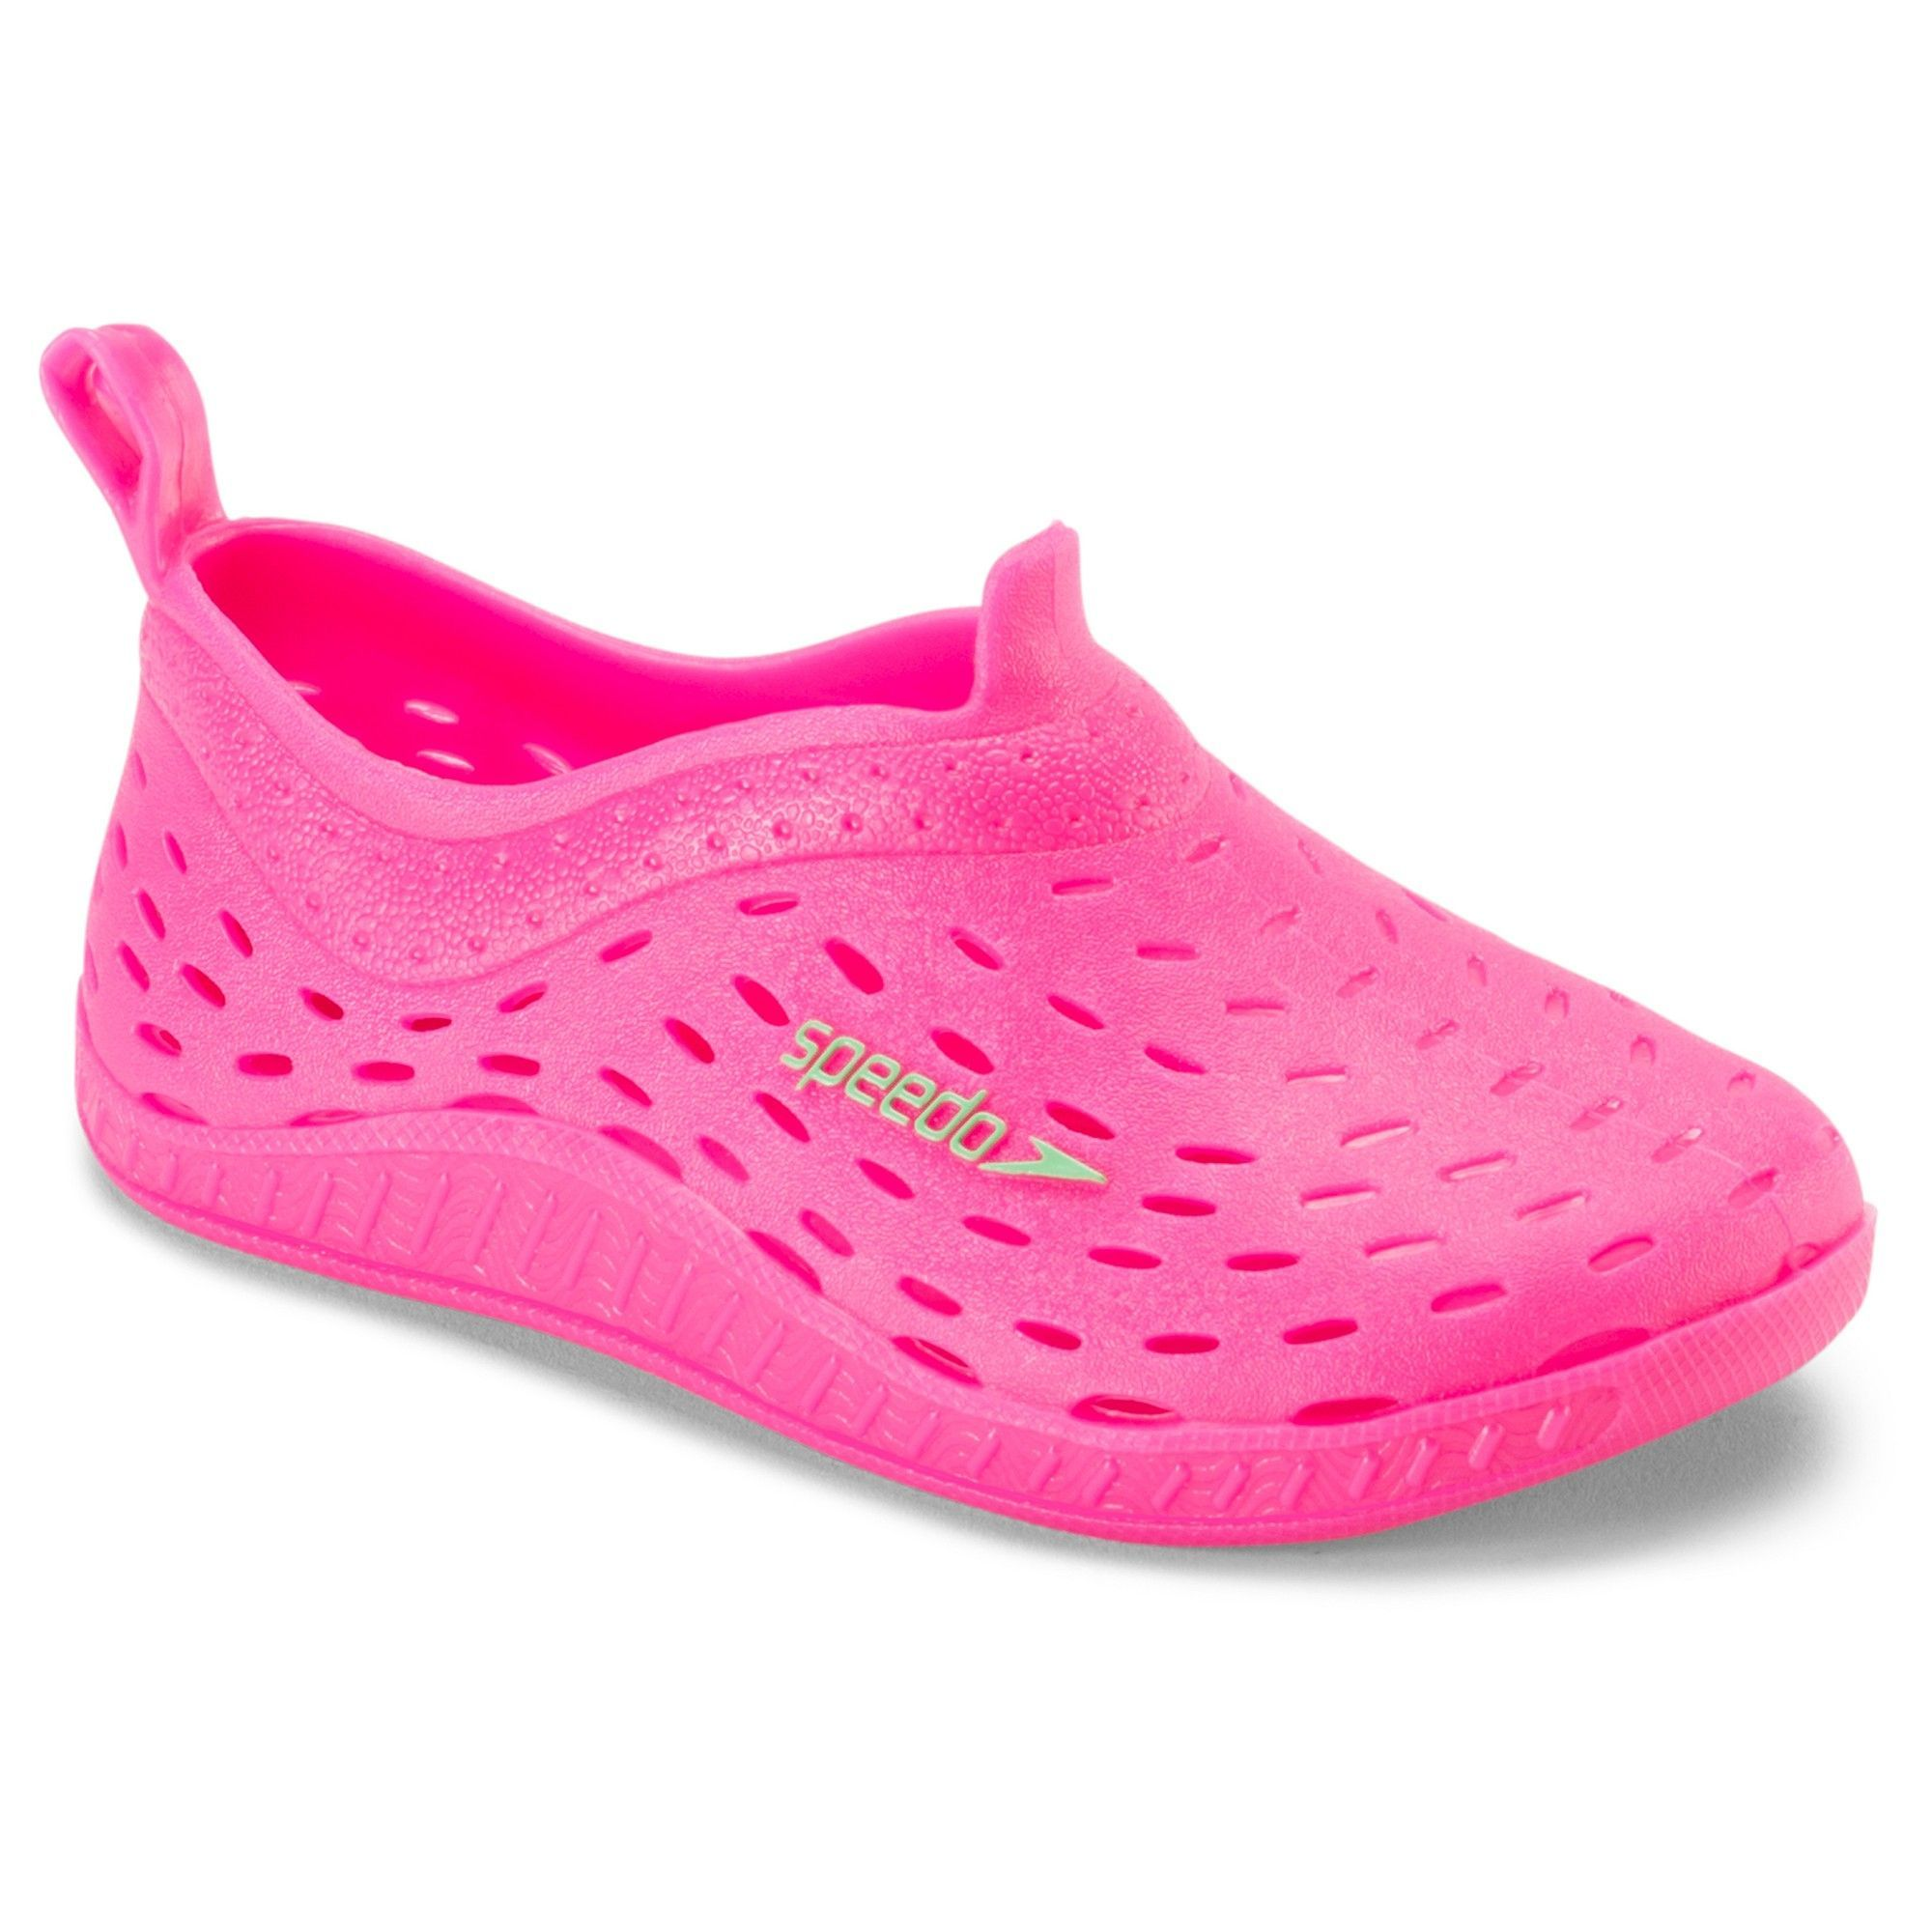 57684d67f860 Speedo Toddler Kids Jellies Water Shoes - Pink (Extra Large ...